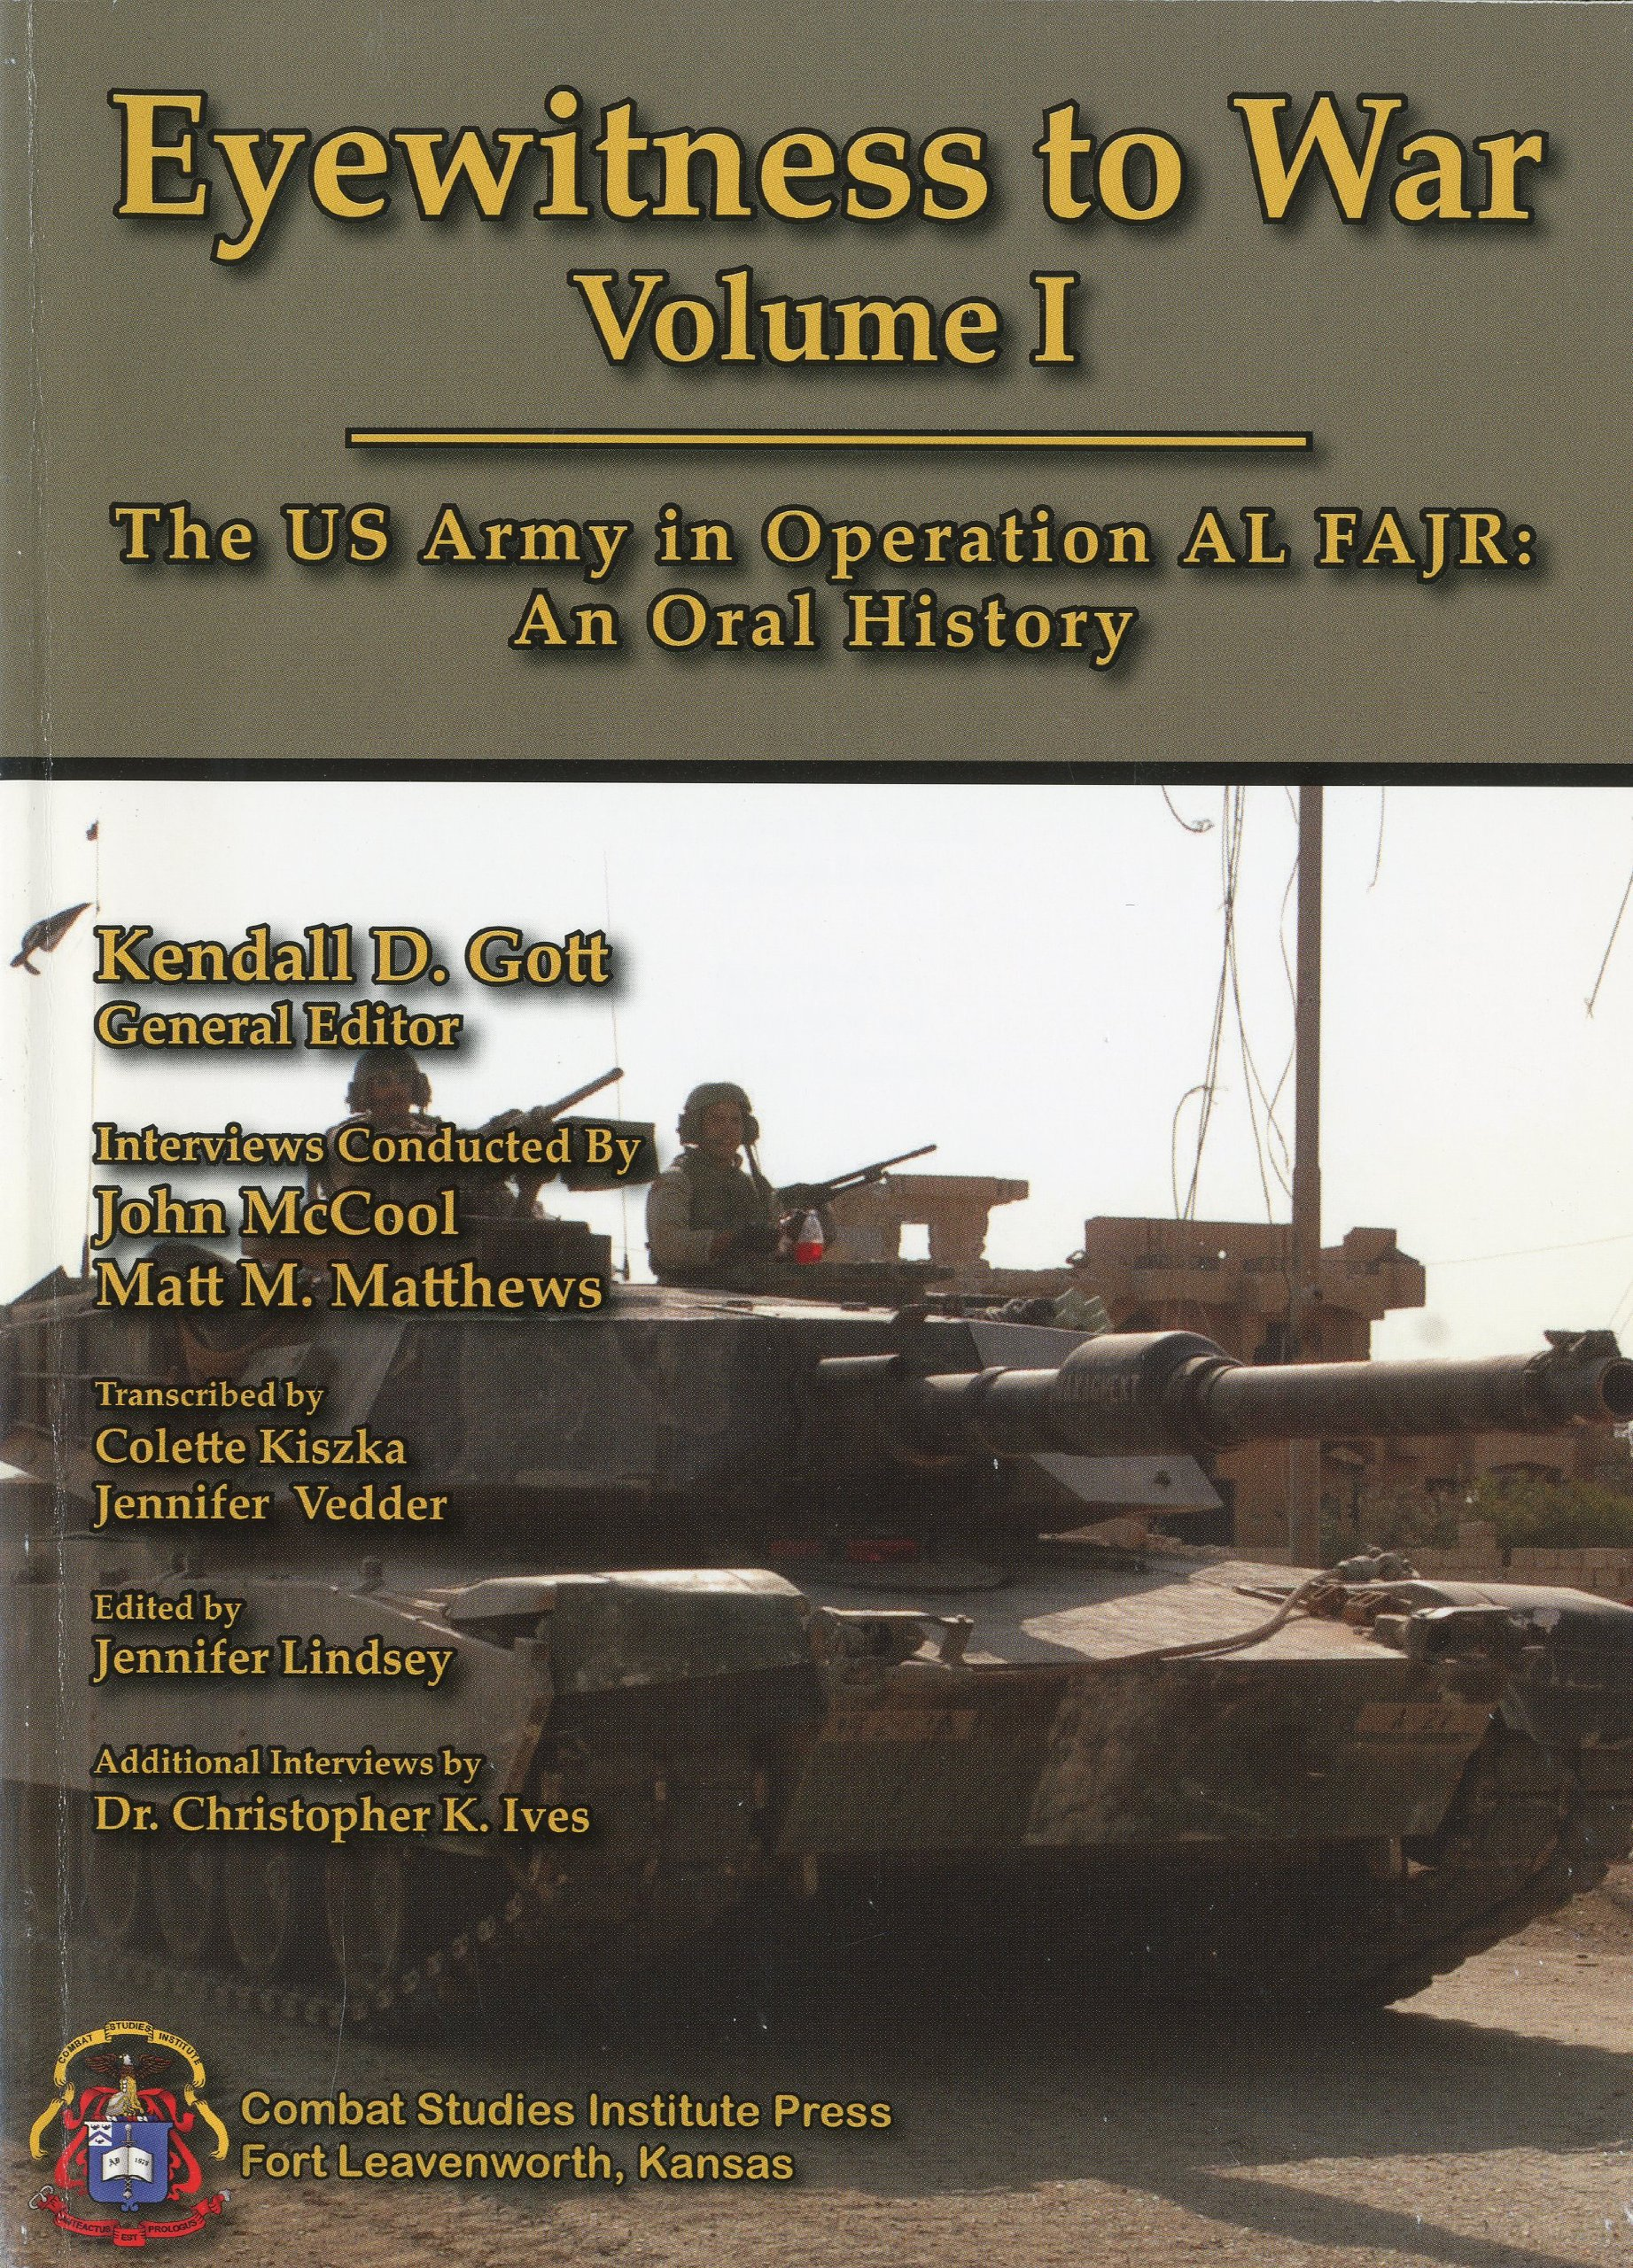 EYEWITNESS TO WAR: The US Army in Operation AL FAJR: An Oral History (Two Volumes) PDF ePub fb2 ebook